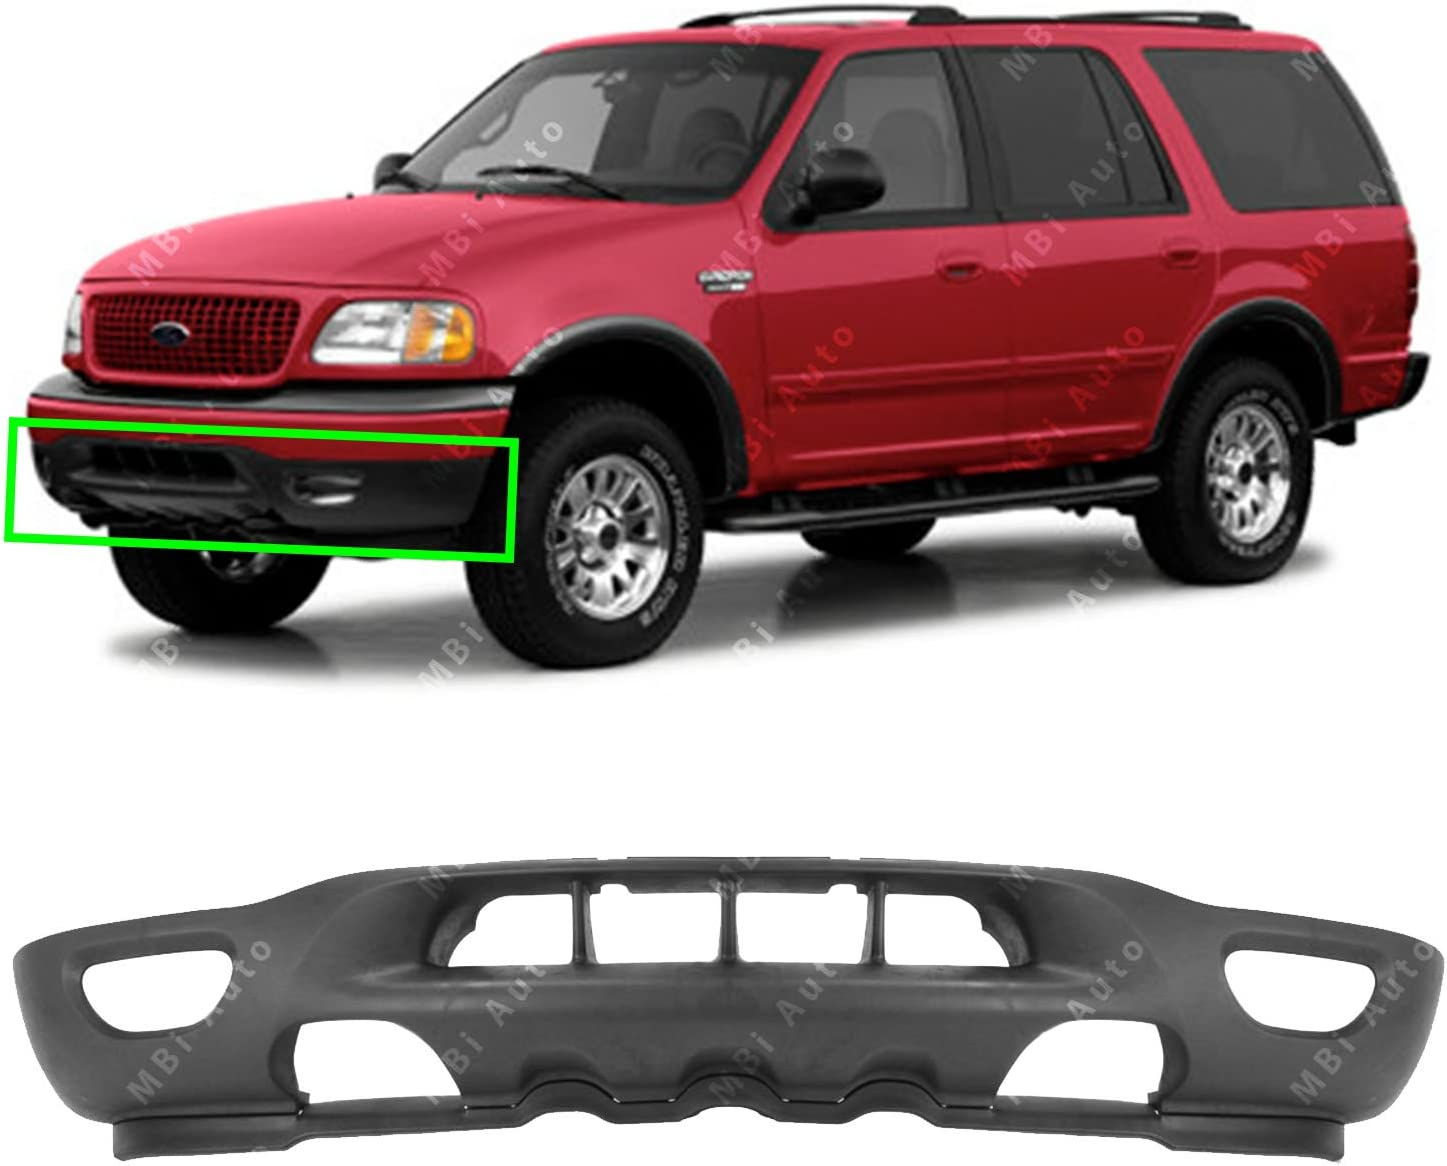 amazon com mbi auto textured black front bumper valance for 1999 2002 ford f150 expedition w tow fog holes 99 02 fo1095181 automotive mbi auto textured black front bumper valance for 1999 2002 ford f150 expedition w tow fog holes 99 02 fo1095181